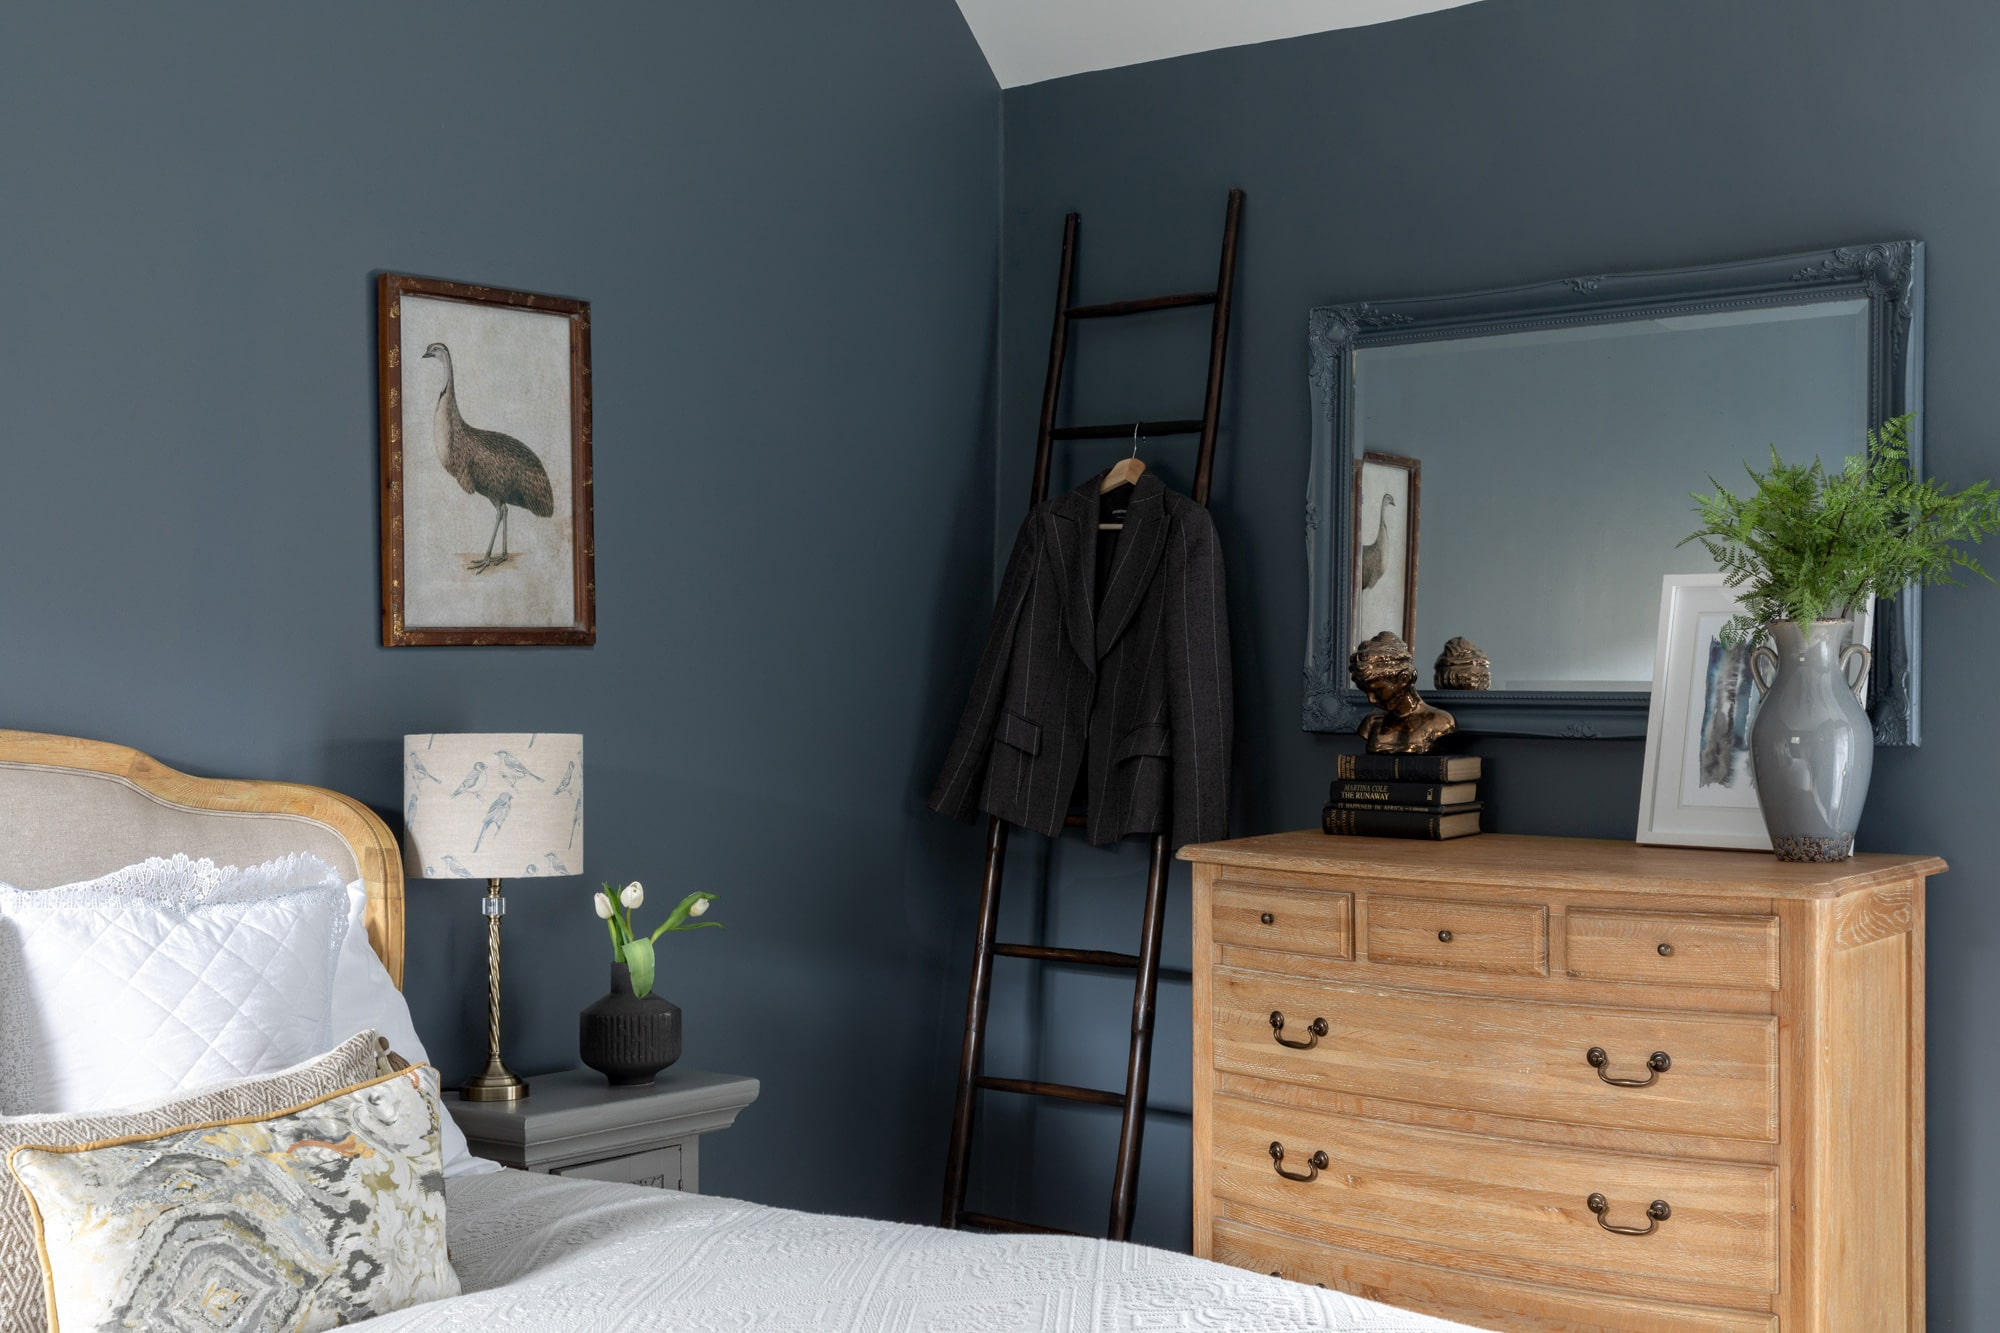 Interior photo of a bedroom: dark grey-blue walls, chest of drawers with a mirror above; white bed linen; grey bedside table; poster art with a bird